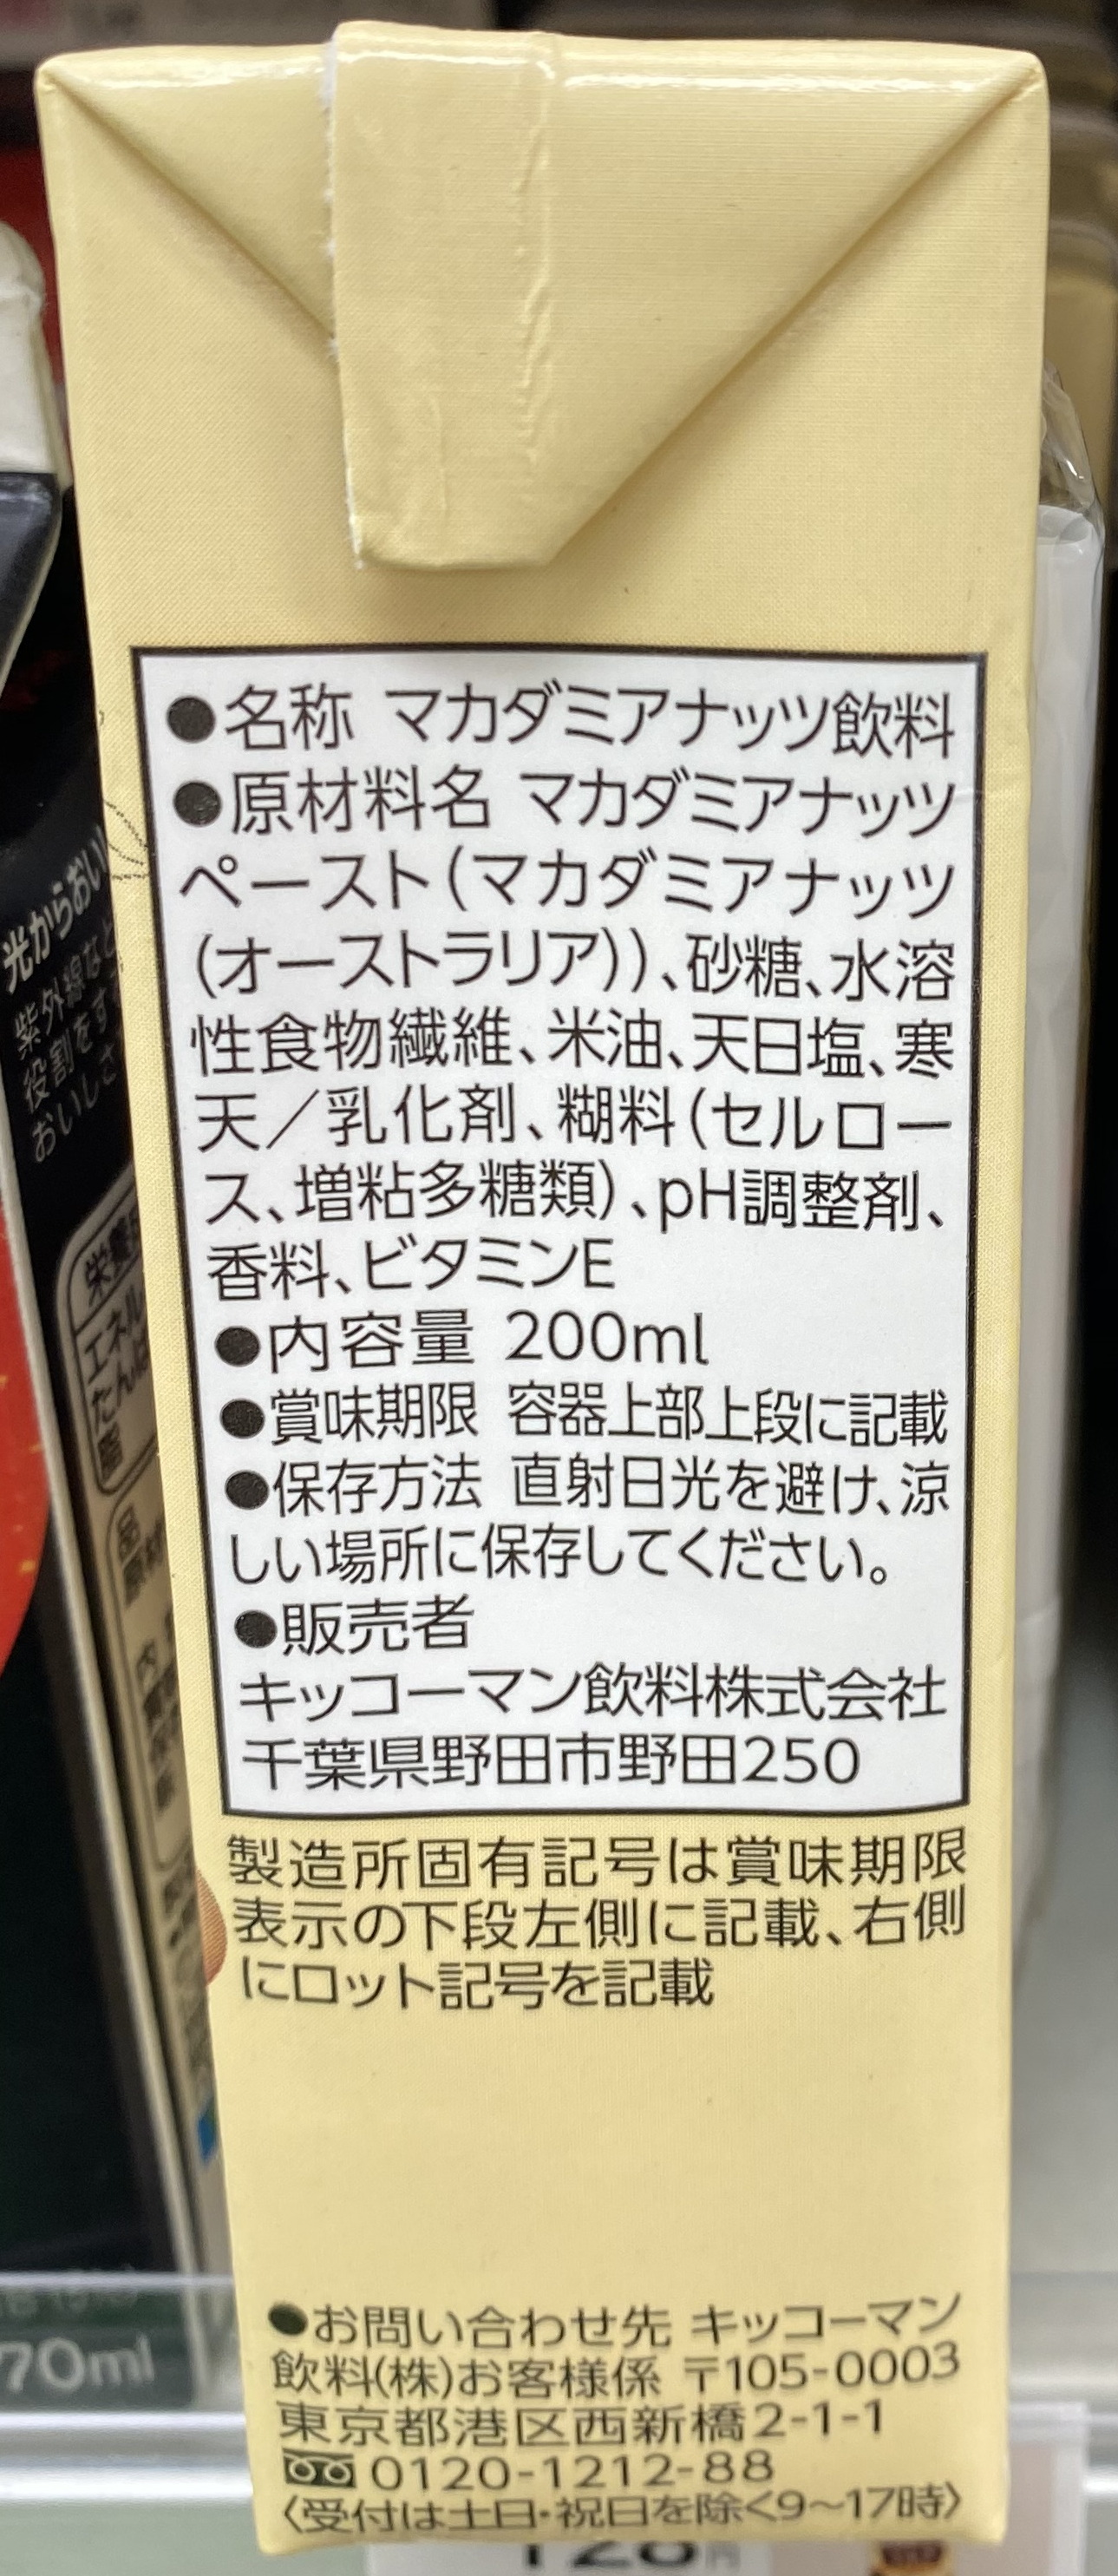 Kikkoman Macadamia Nut Milk ingredient list